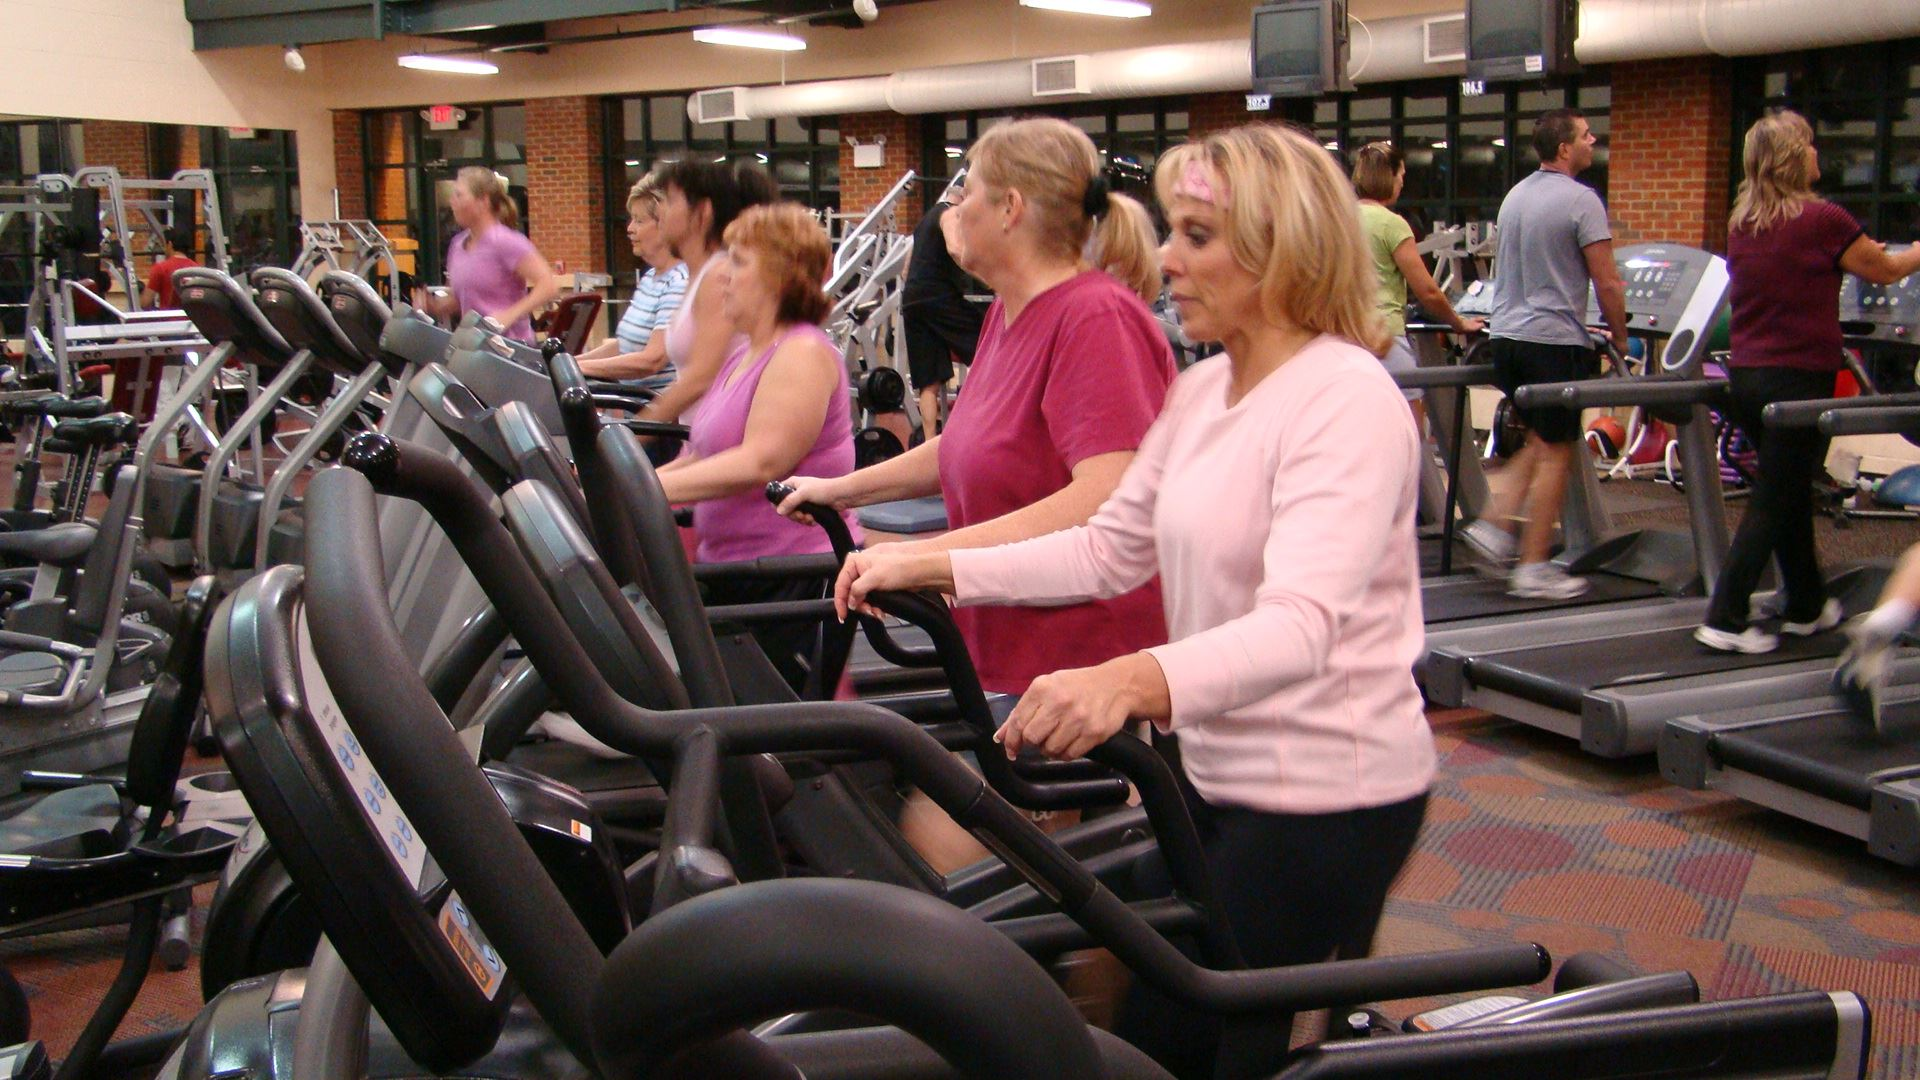 Women using the exercise equipment at the Groveport Recreation Center's fitness facility.